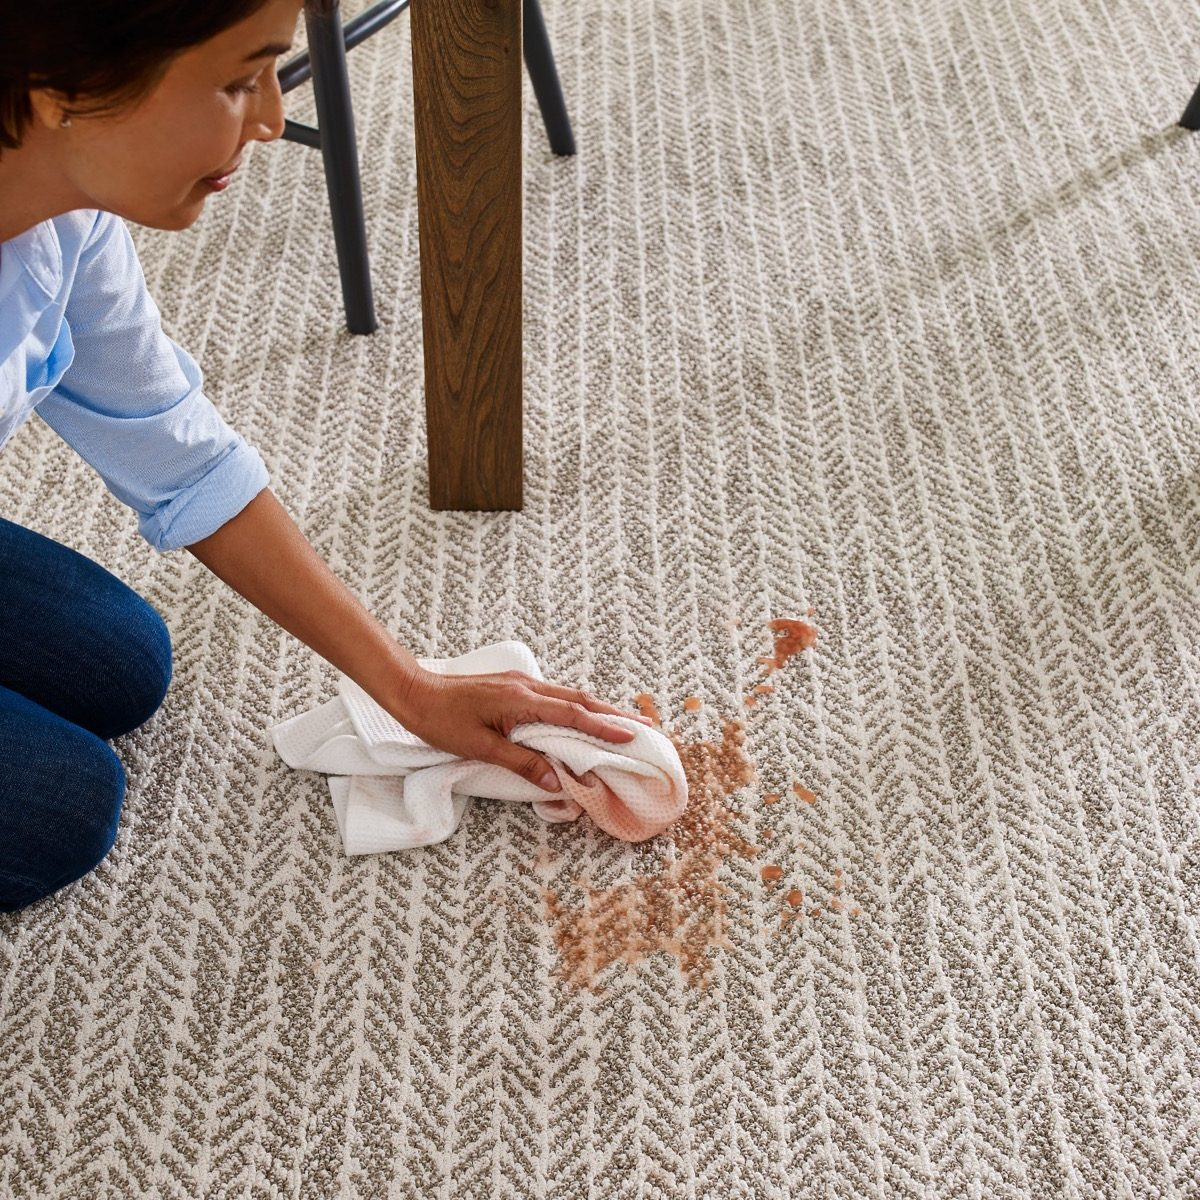 Stain cleaning | Flooring 101